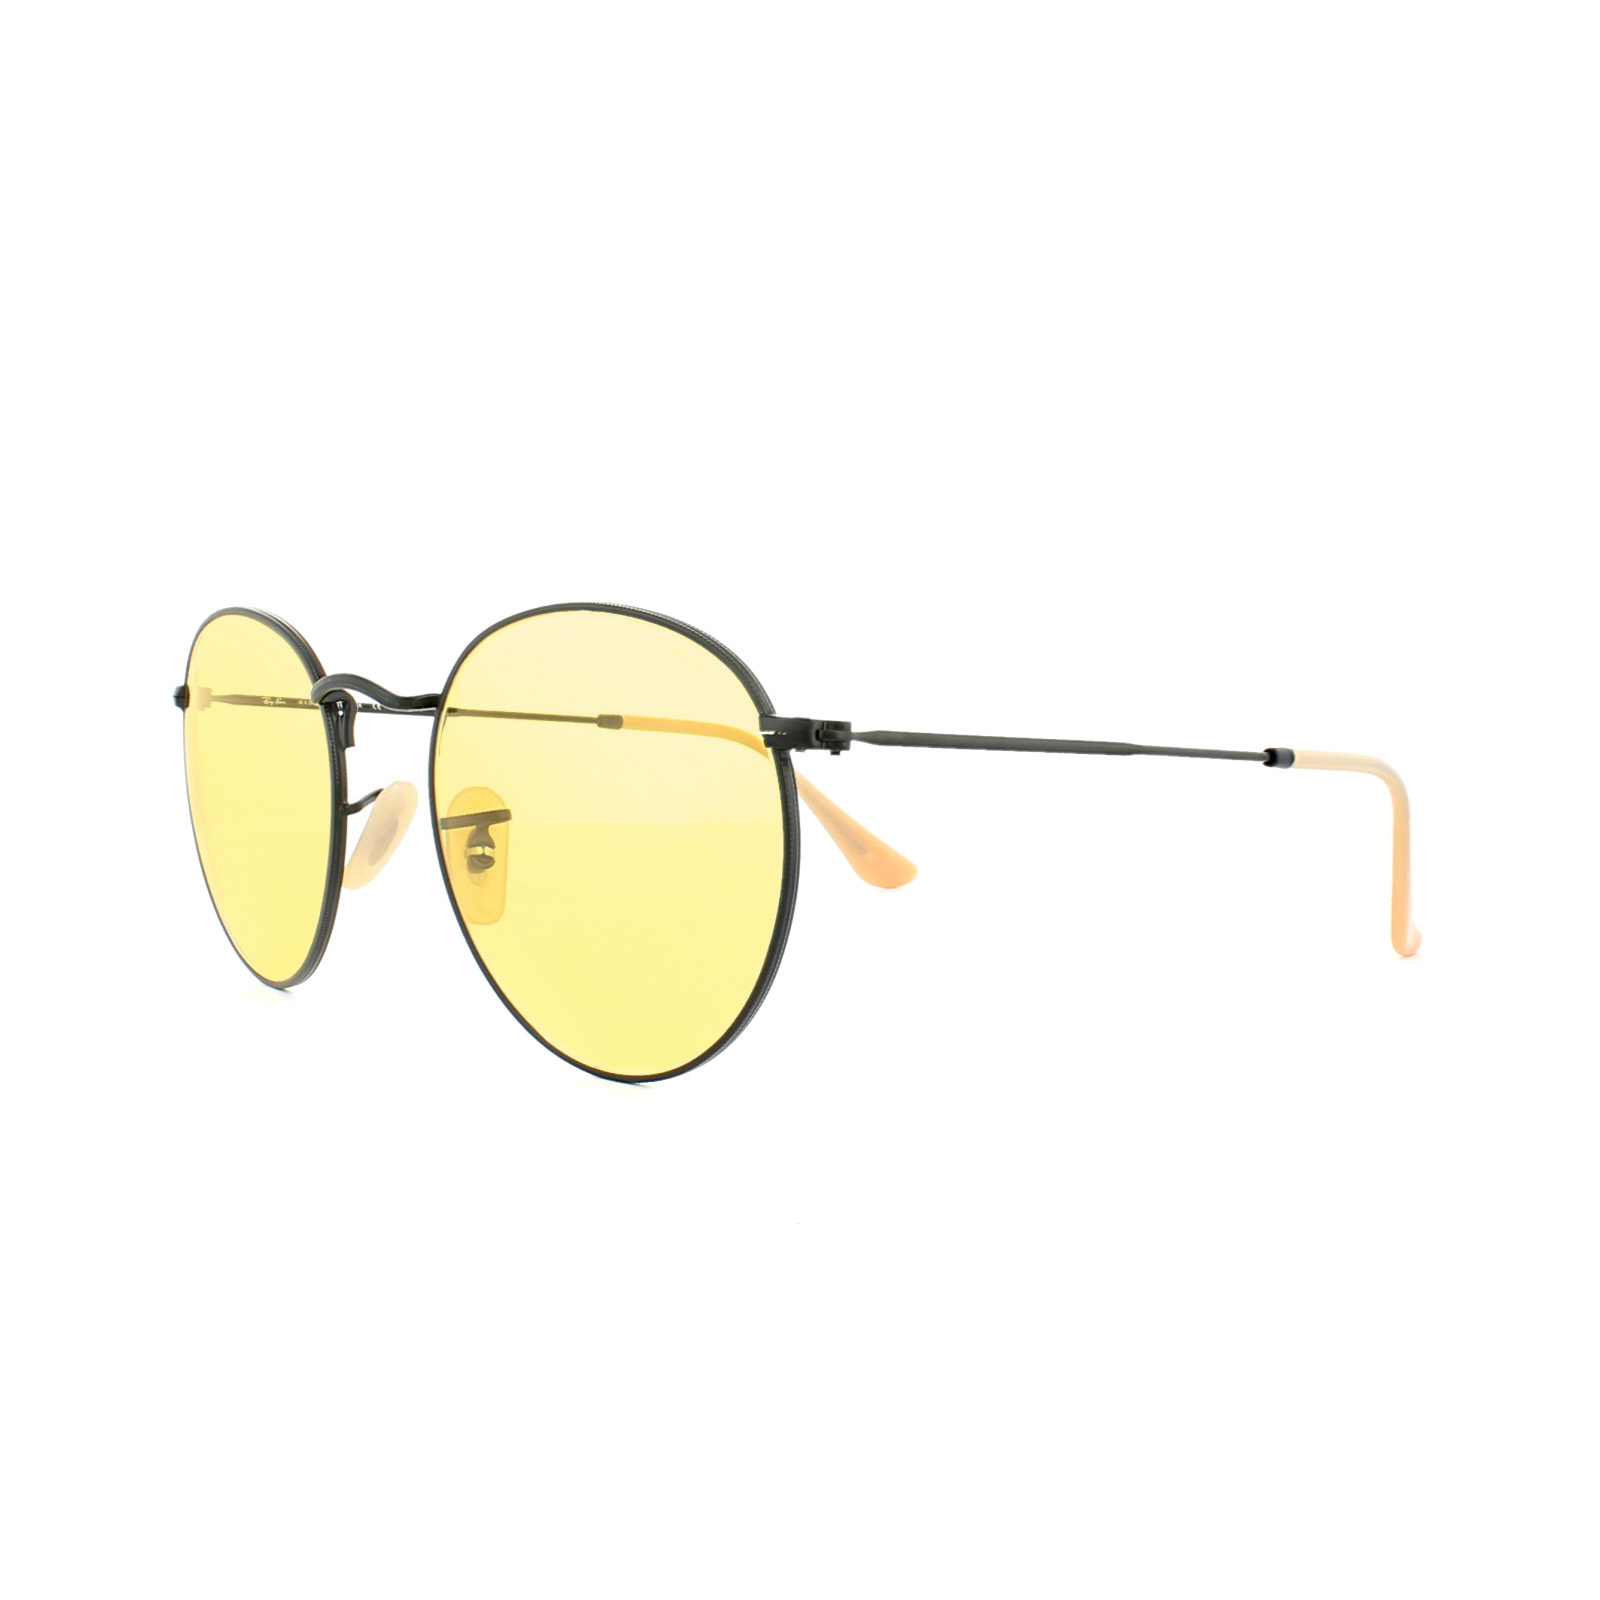 ed385b9f29 Sentinel Ray-Ban Sunglasses Round Metal 3447 90664A Black Yellow  Photochromic Medium 50mm